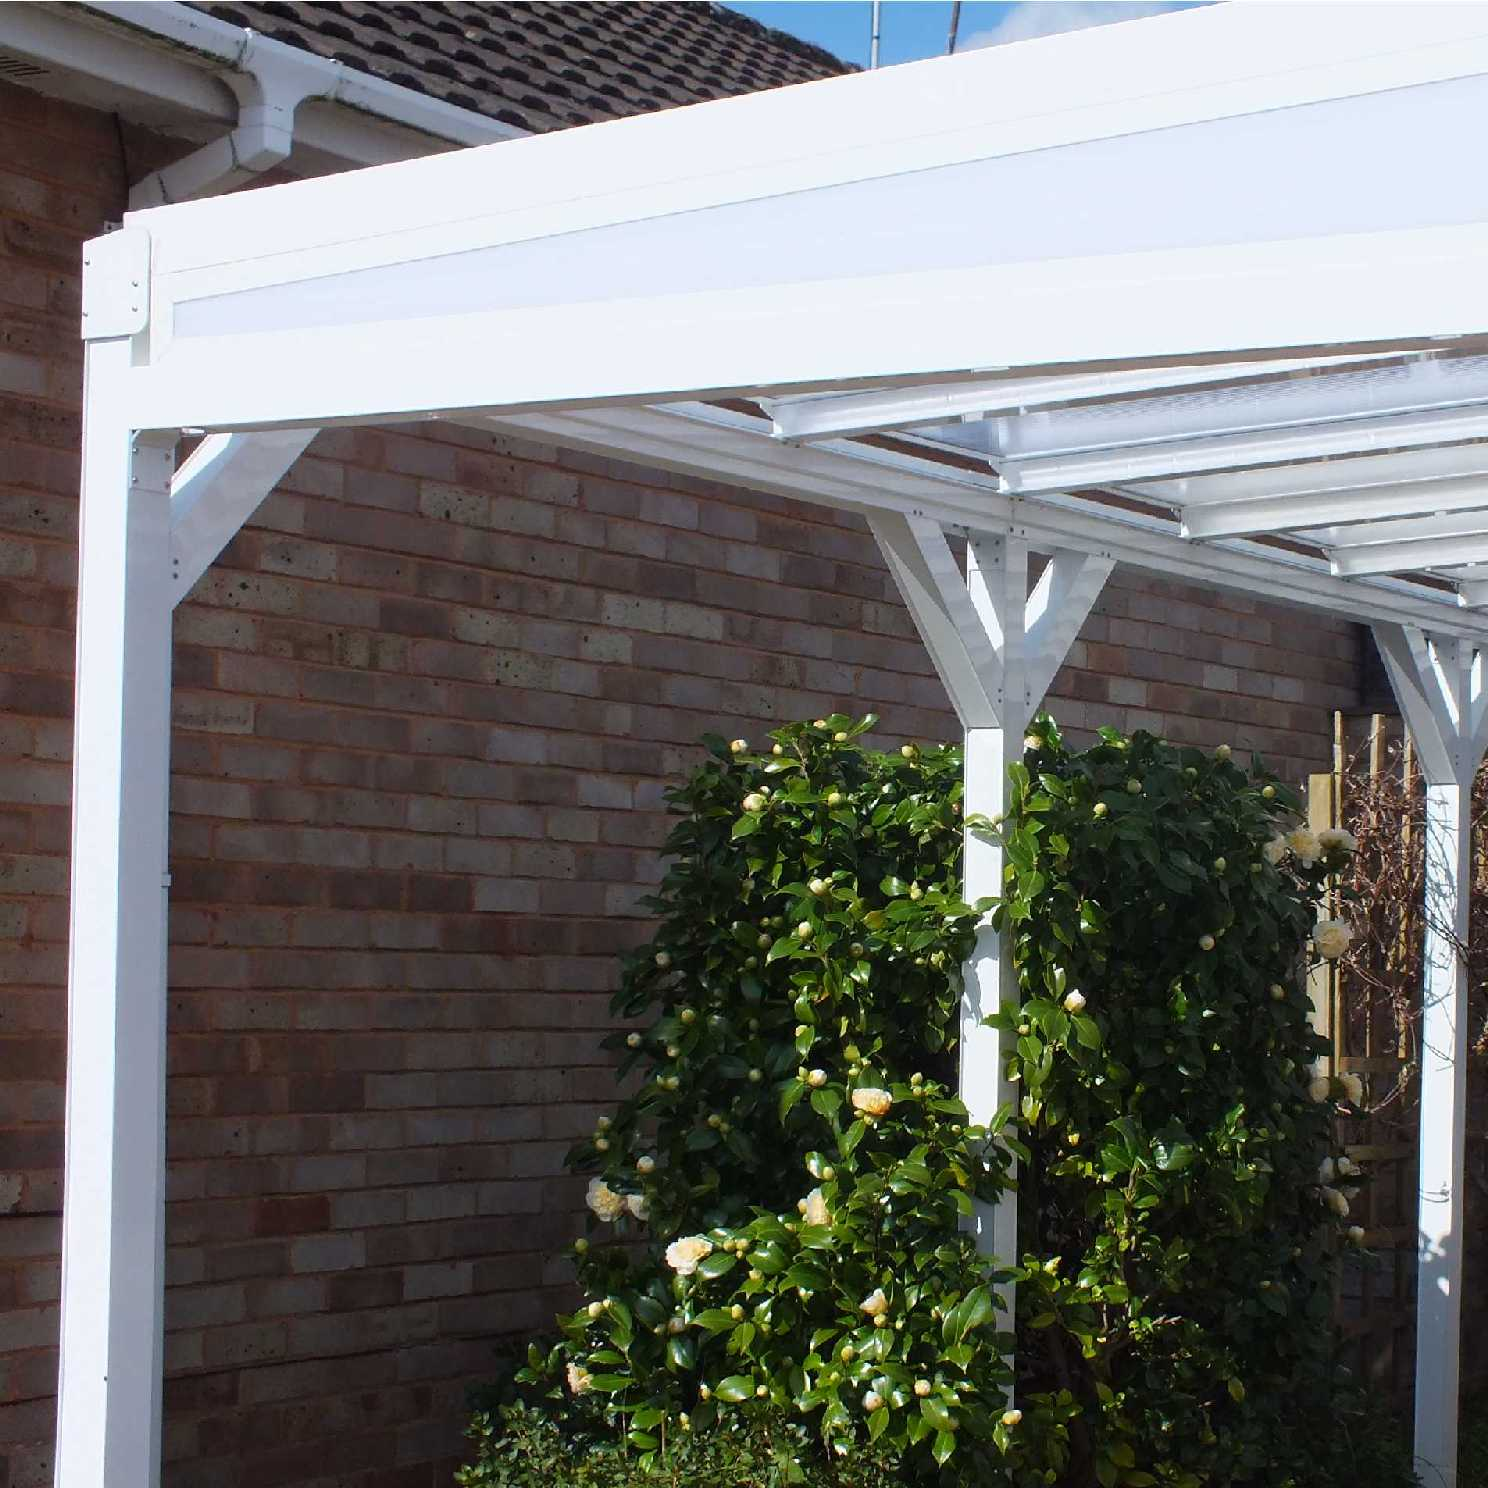 Omega Smart Lean-To Canopy with 16mm Polycarbonate Glazing - 9.2m (W) x 4.0m (P), (5) Supporting Posts from Omega Build